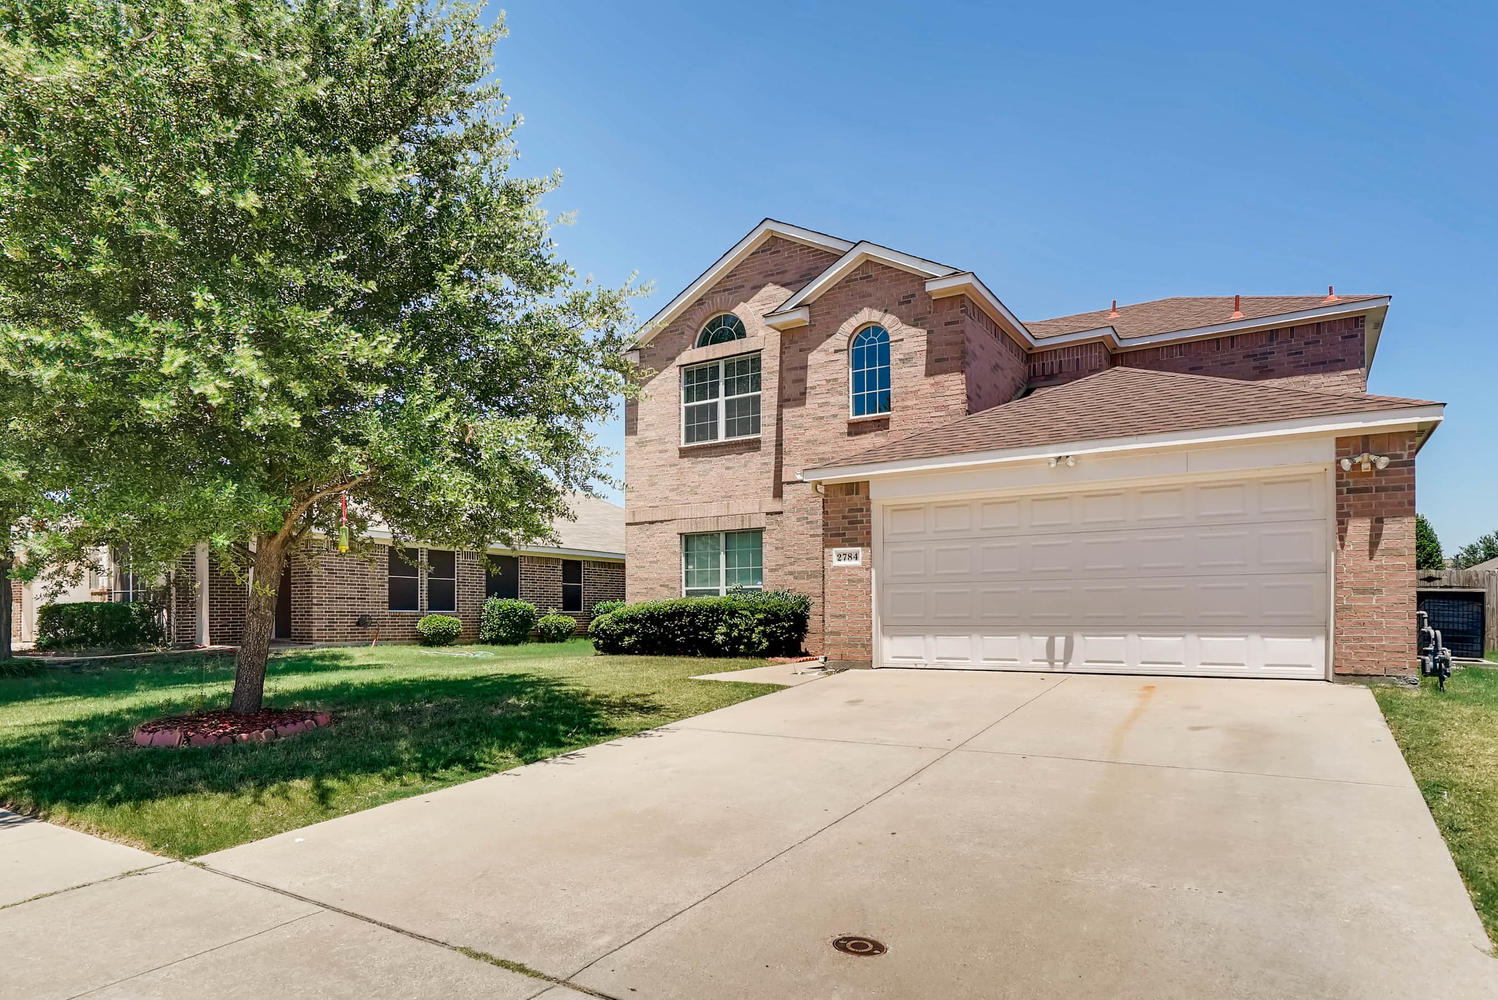 Photo of 2784 Sweetbriar Ln, Grand Prairie, TX, 75052